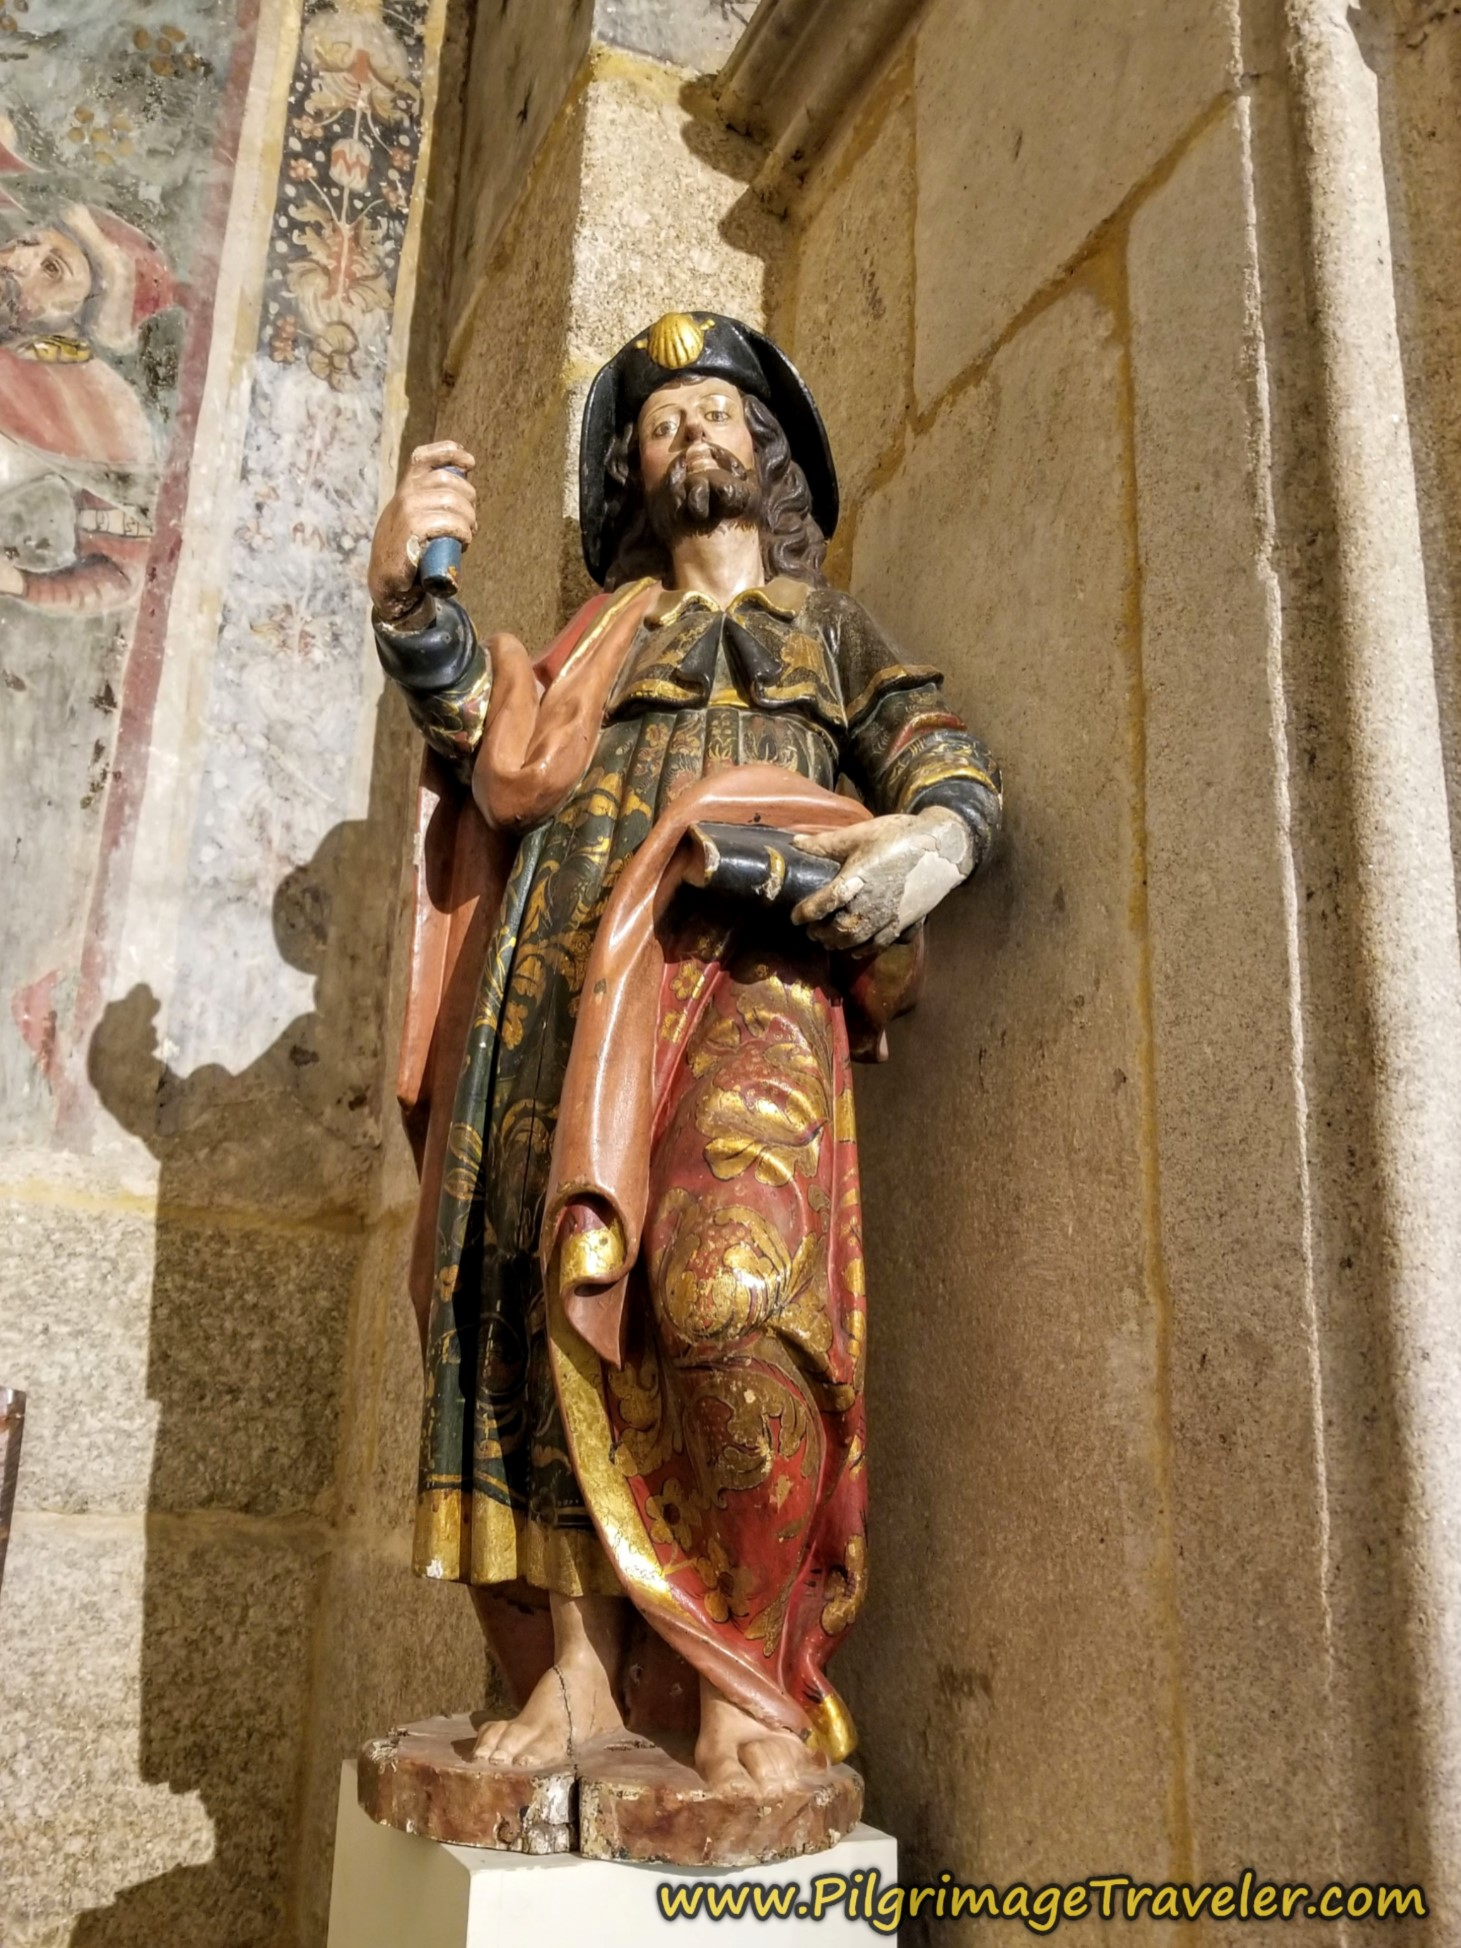 Santiago Sculpture, Cathedral in Ourense, Spain